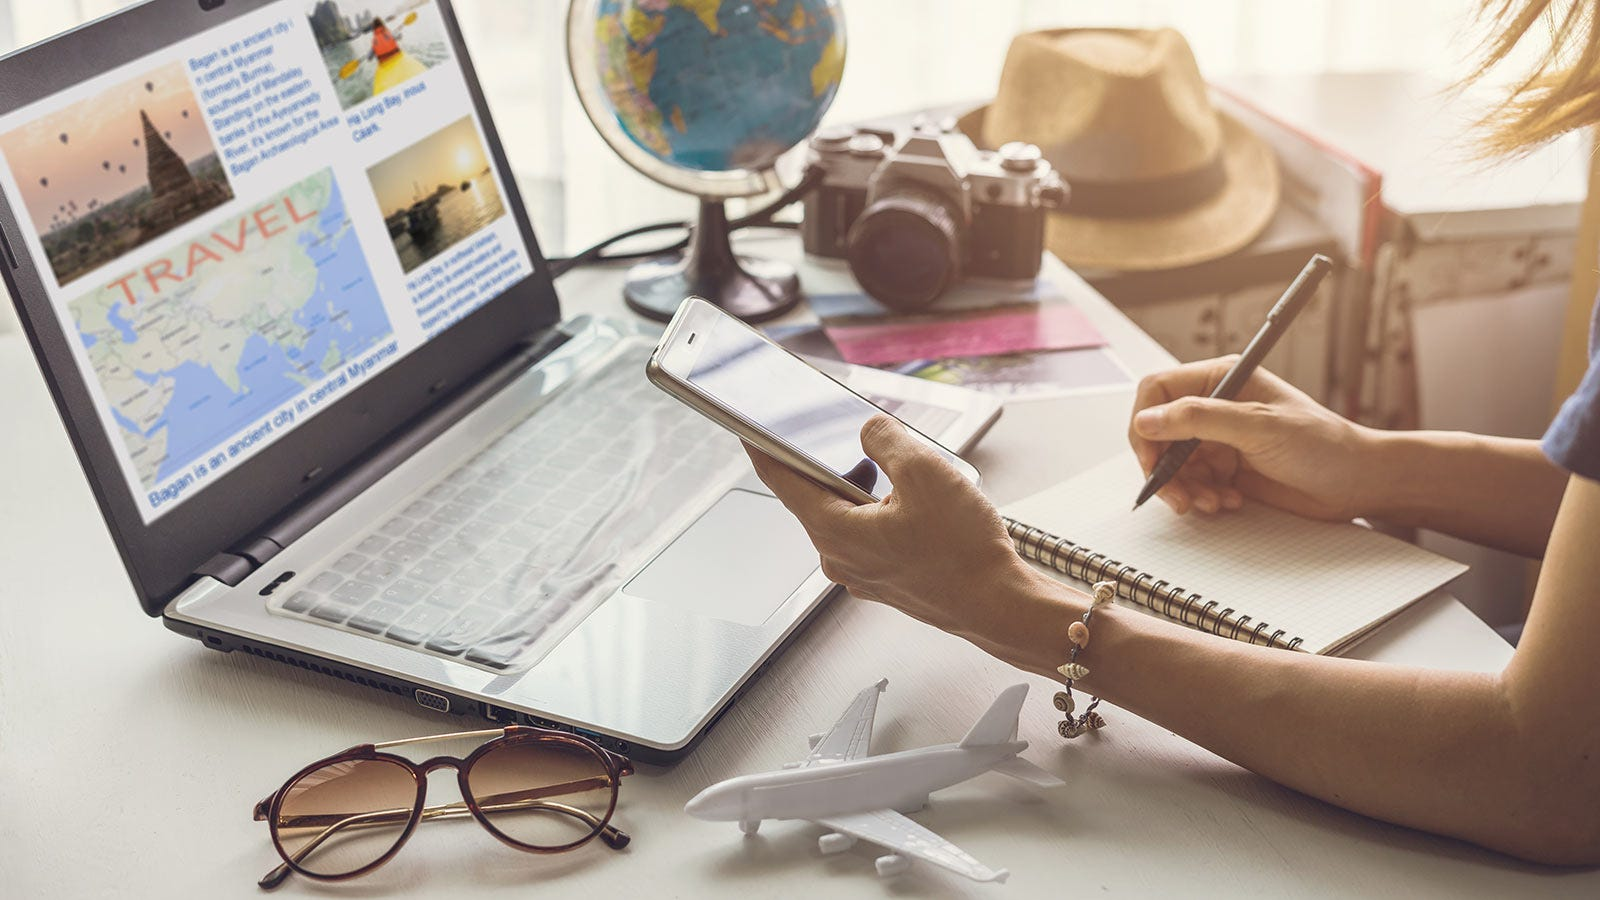 A woman jotting down travel ideas from a website in a notebook.